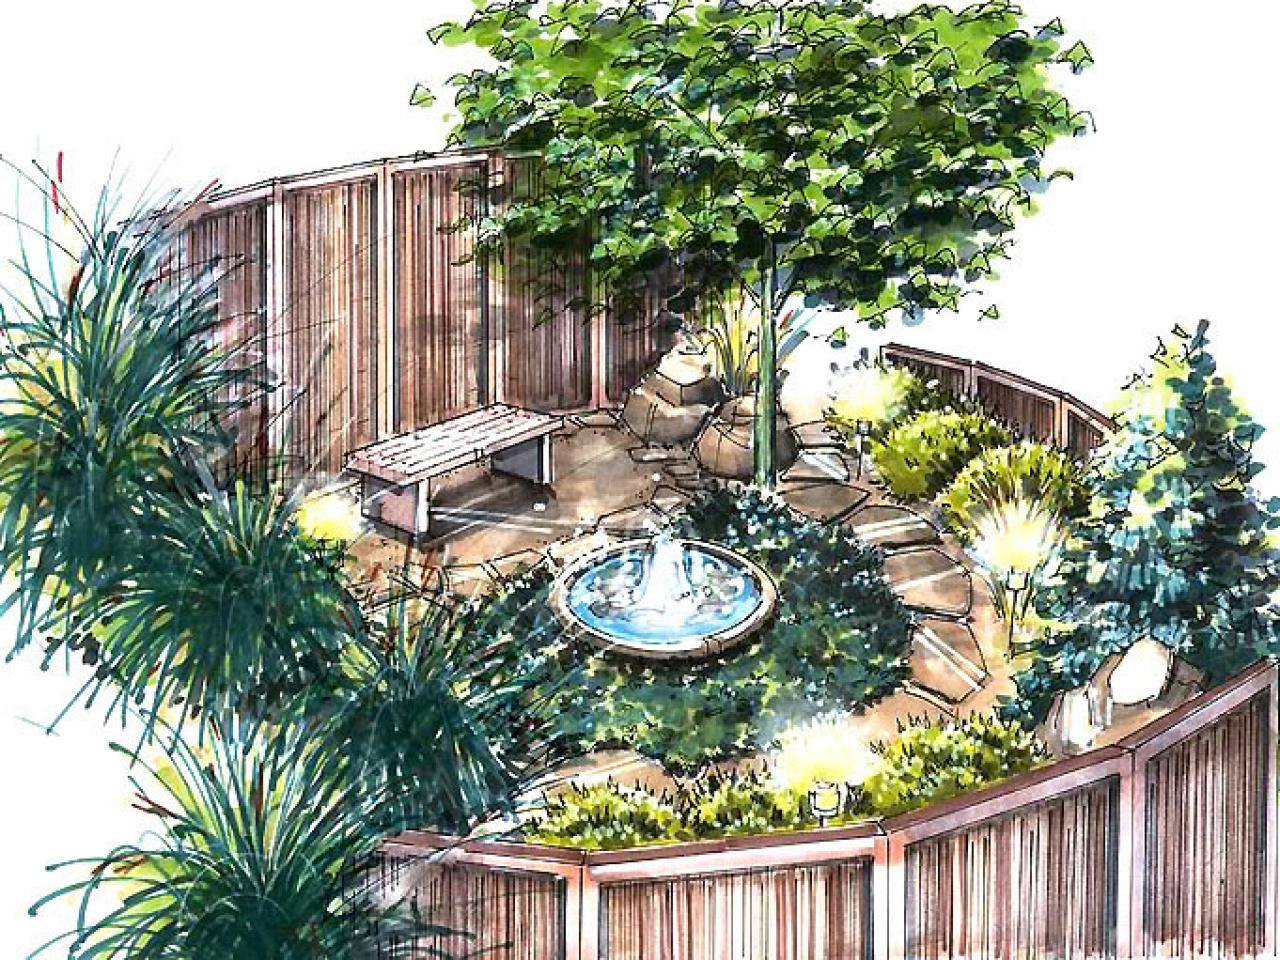 A meditation garden plan hgtv for Garden landscape plan